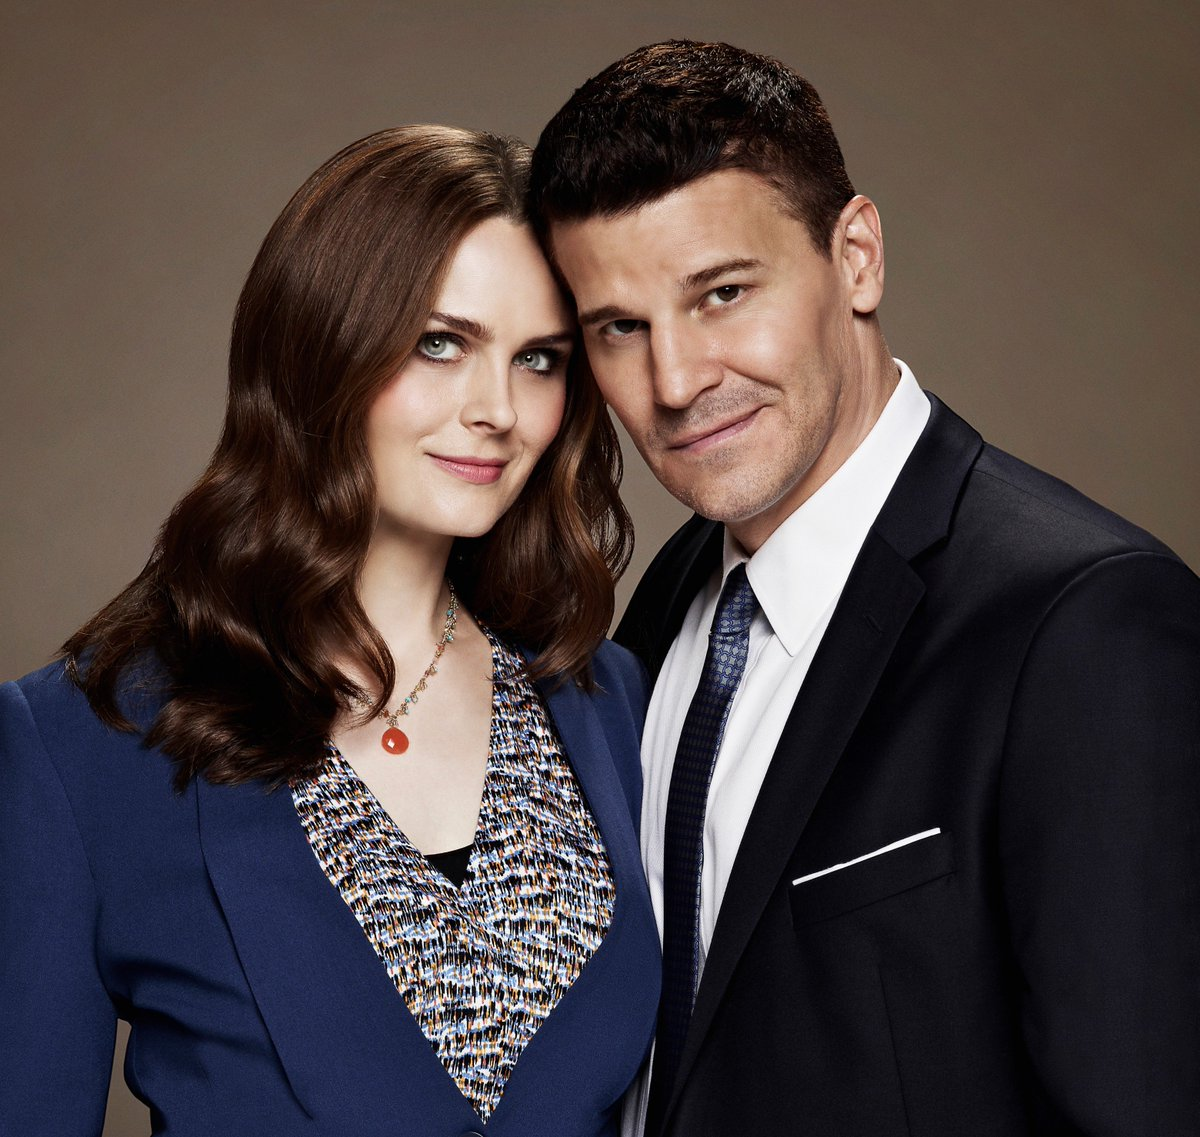 #Bones set to return for a 12th (and final) season https://t.co/j6tKcHb2b7 @BONESonFOX https://t.co/gvlbuI6MQx